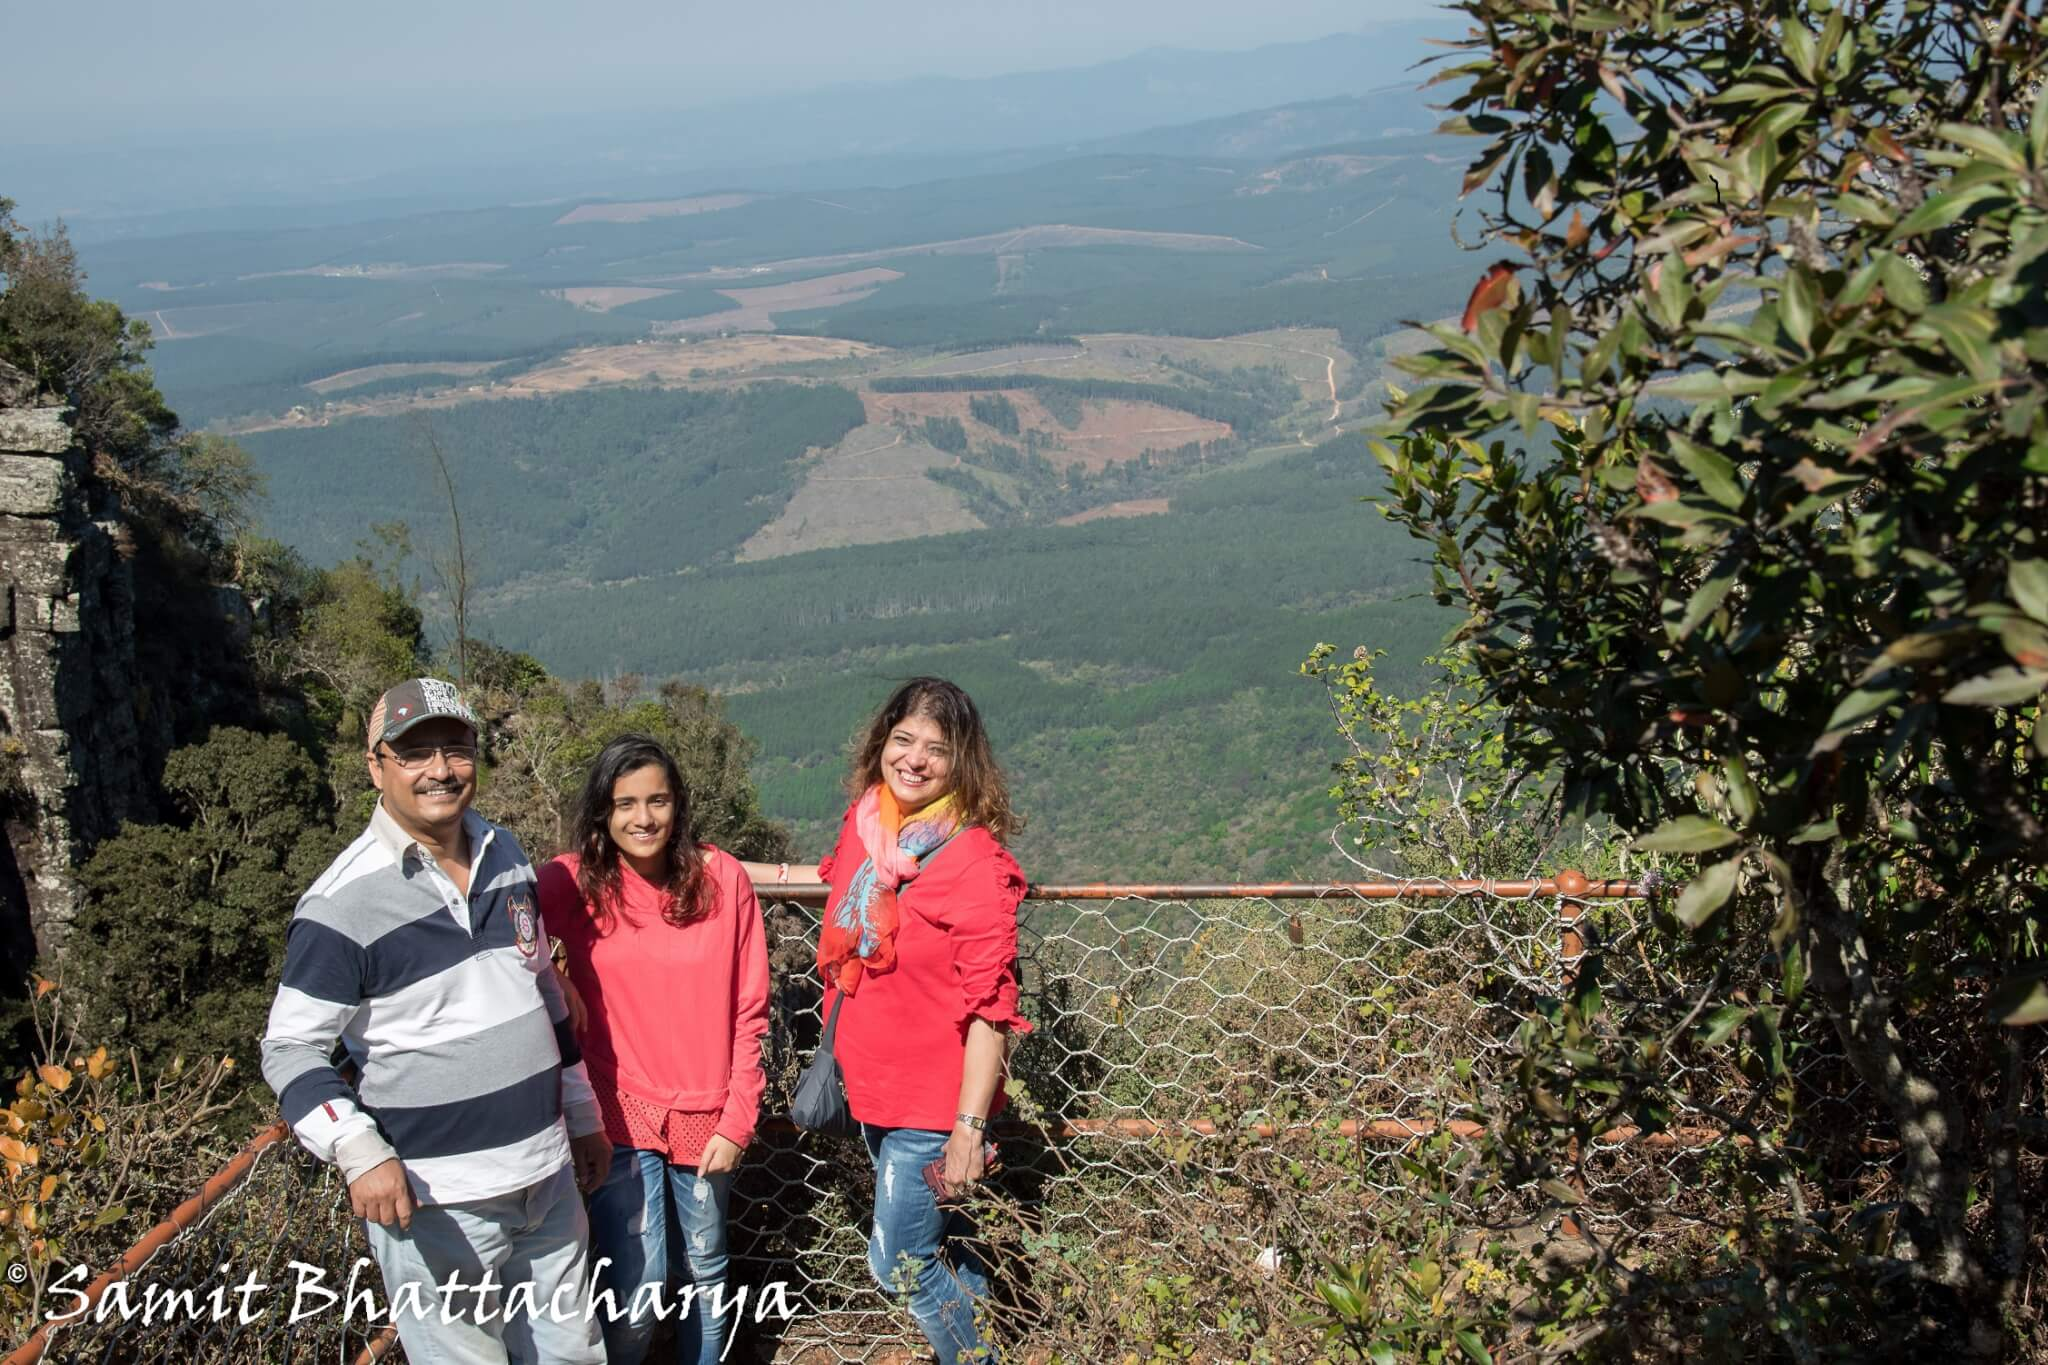 With my family at Gods window : Panorama Route